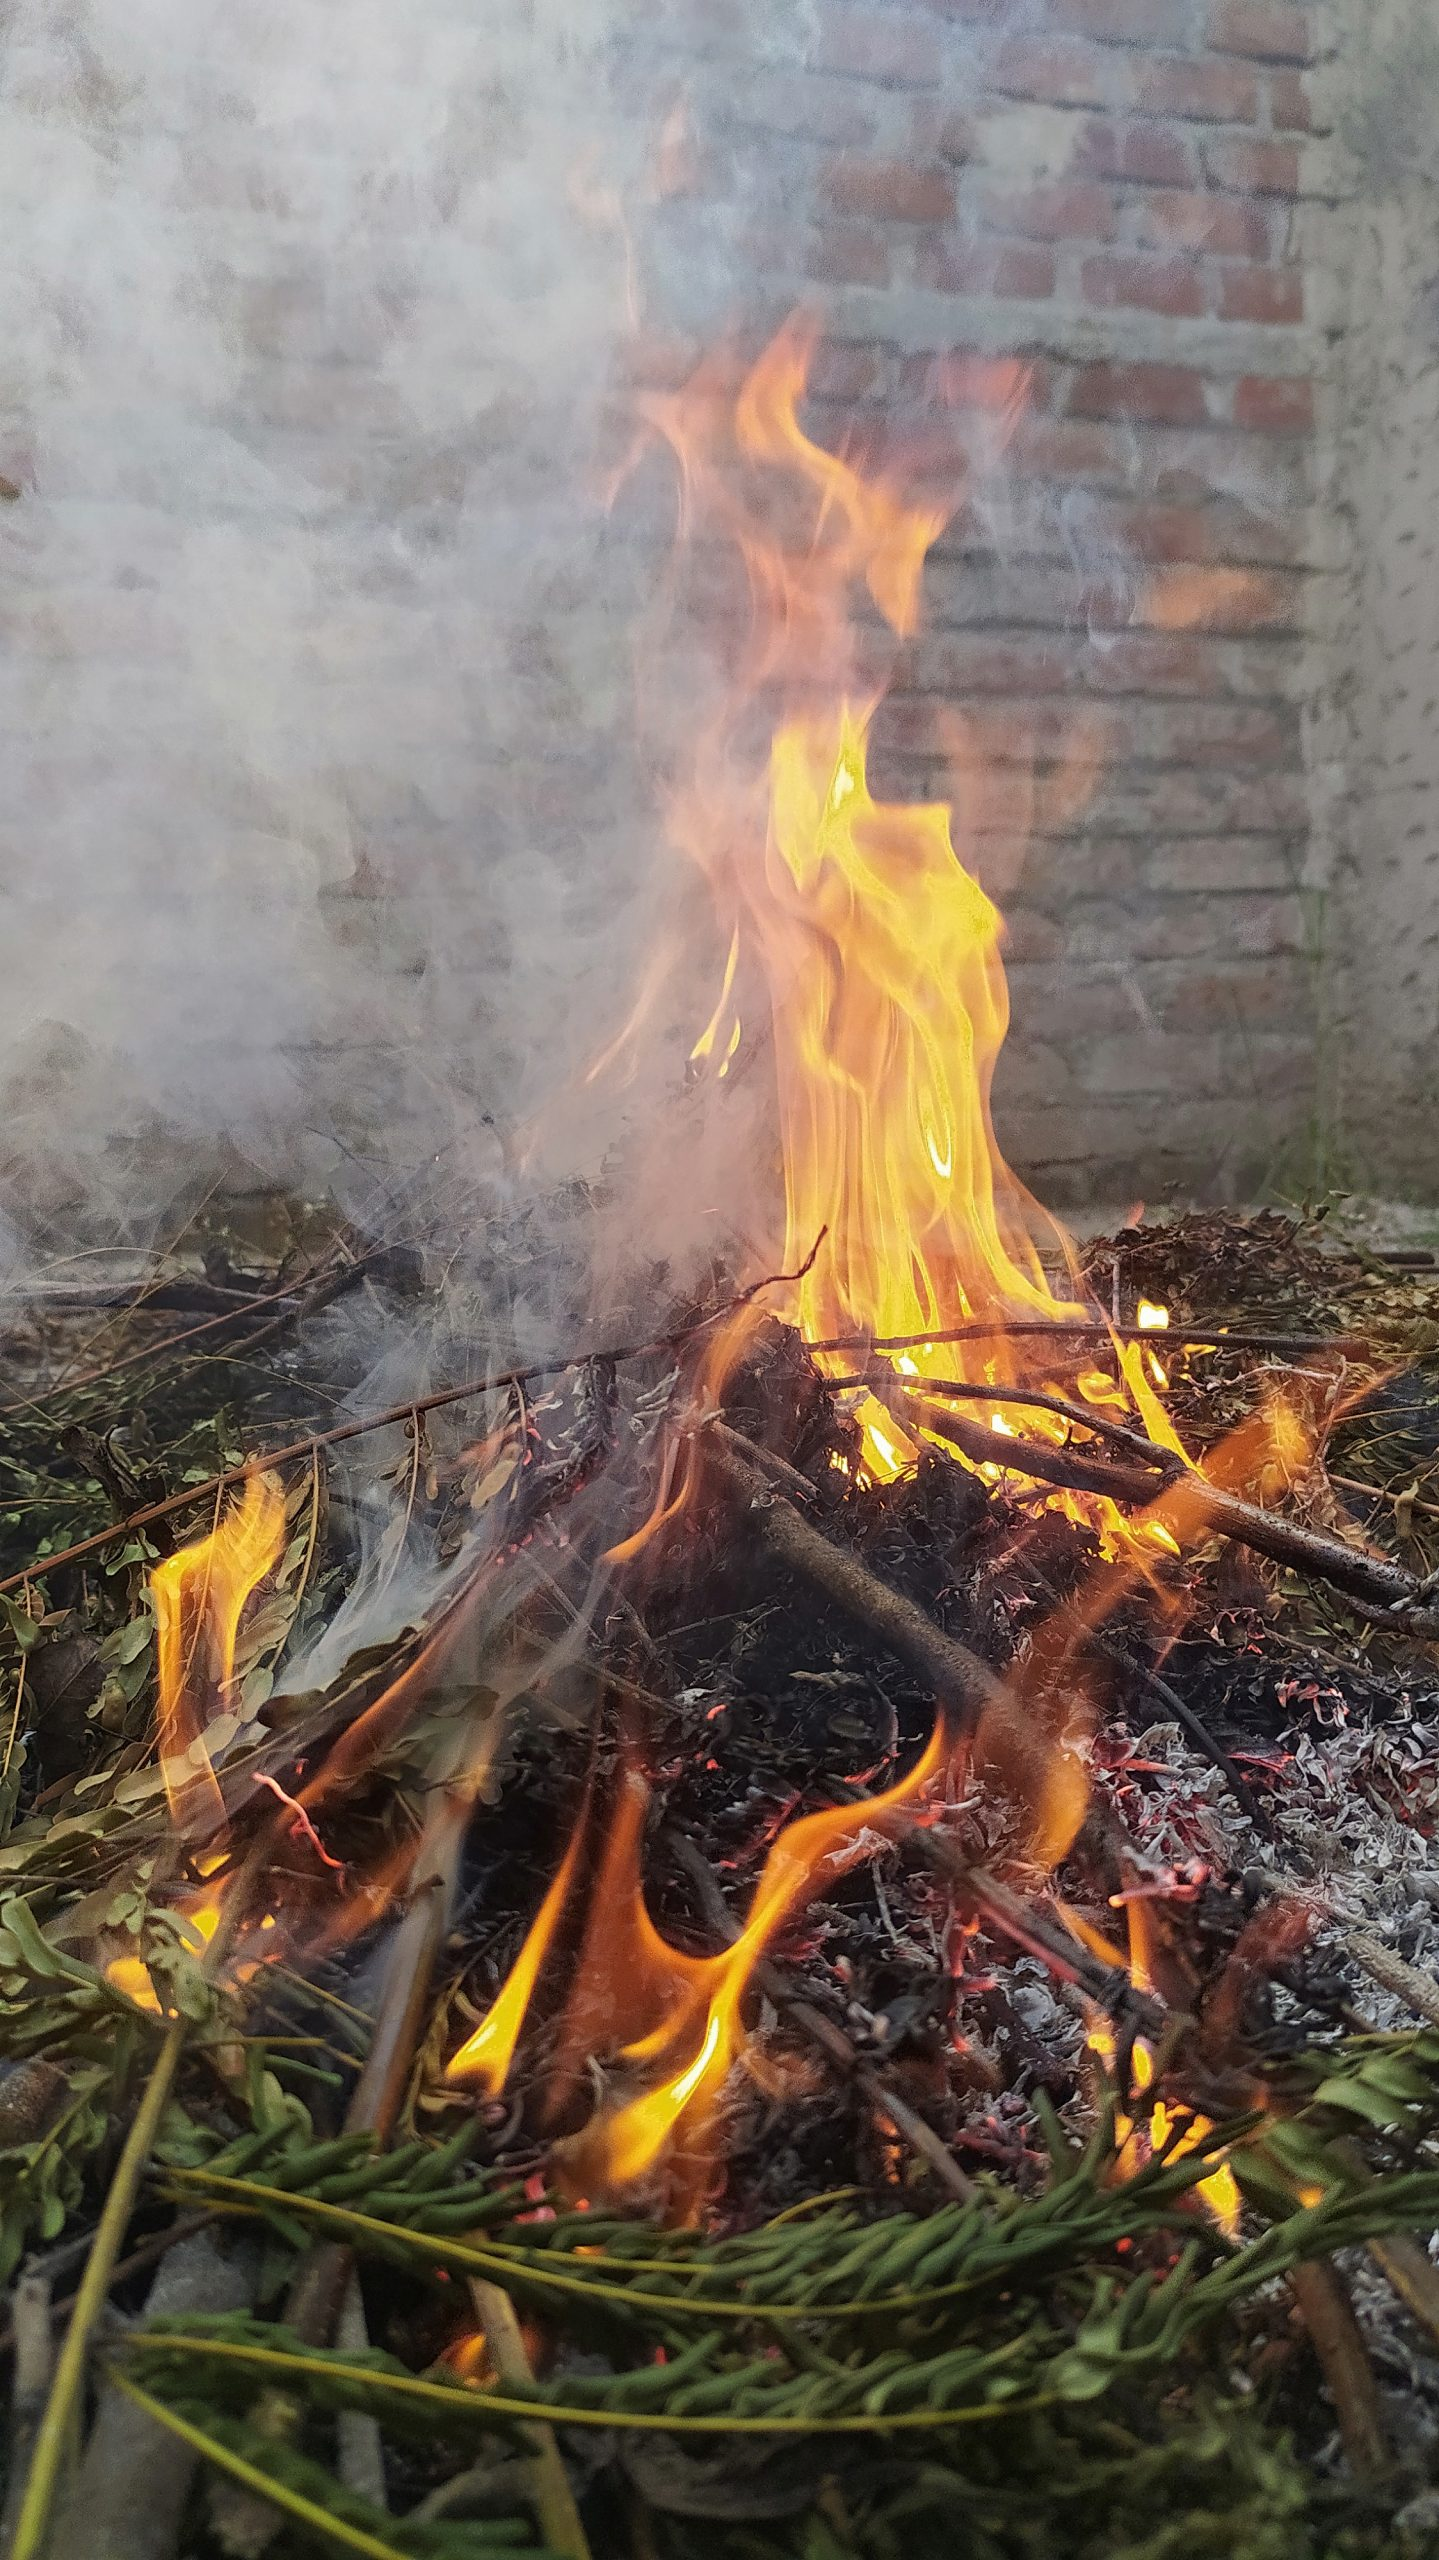 Burning twigs and dry leaves